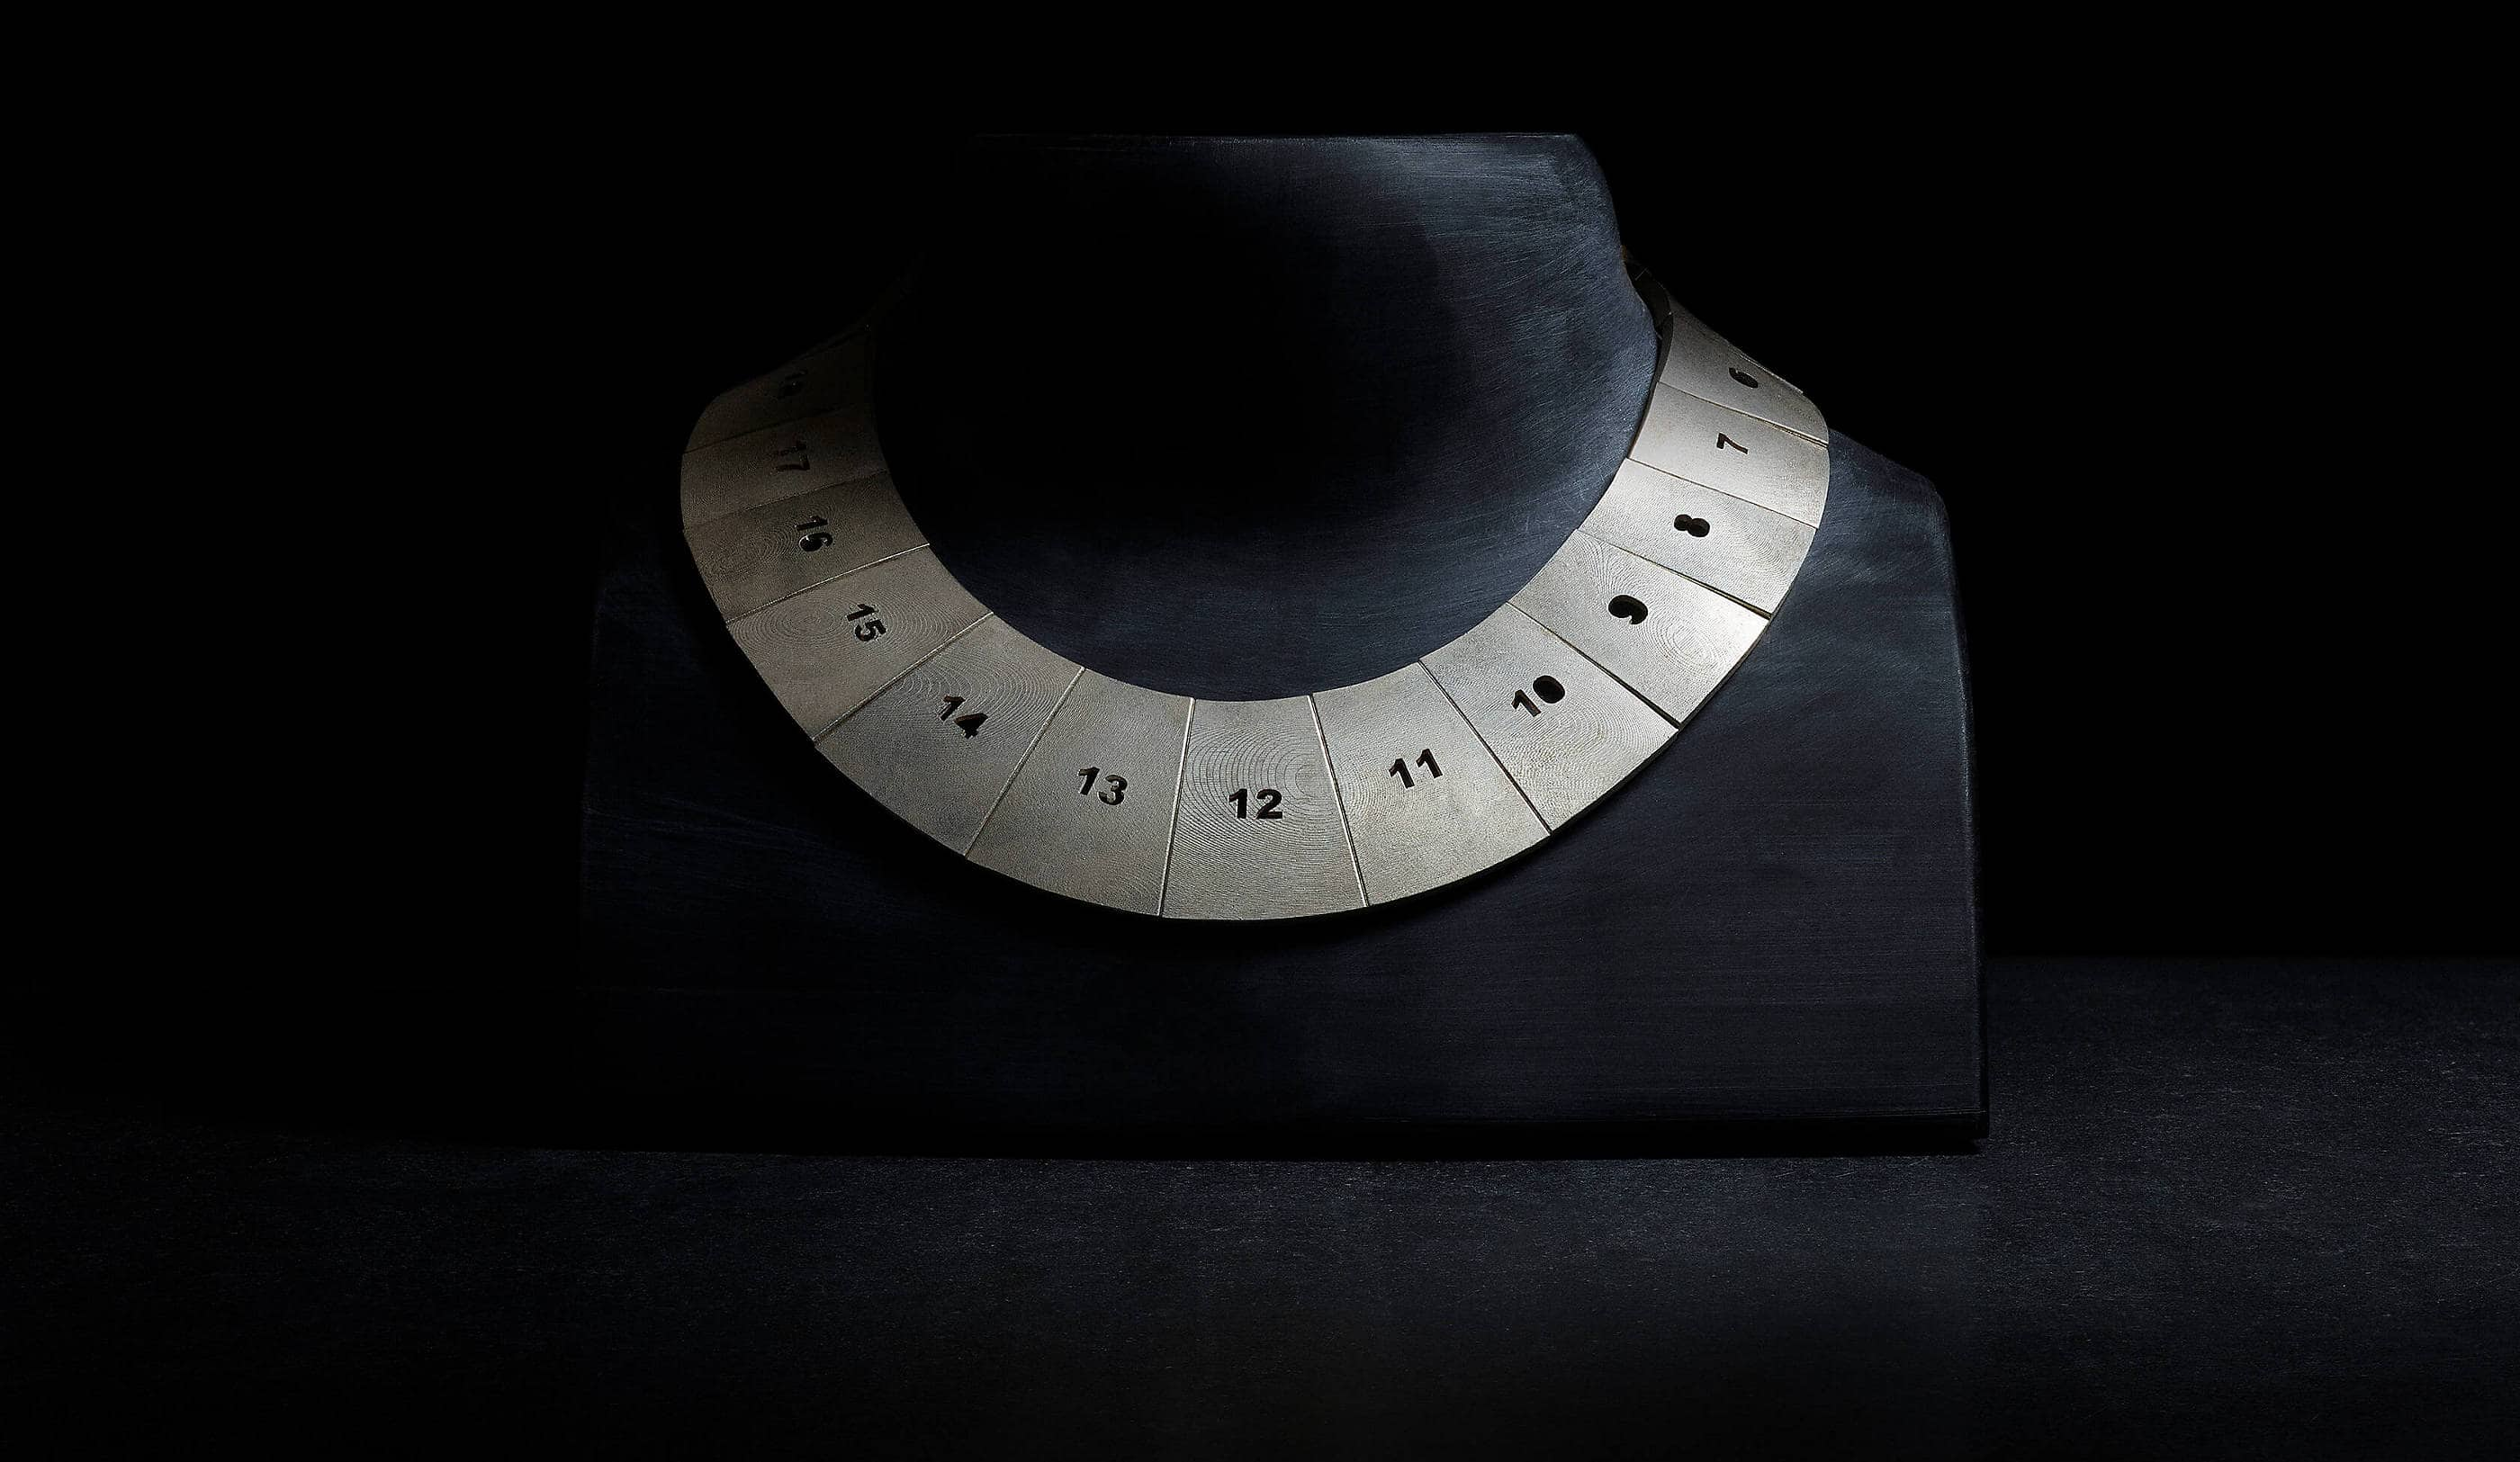 A image of a black neck form with a numbered metal necklace design.